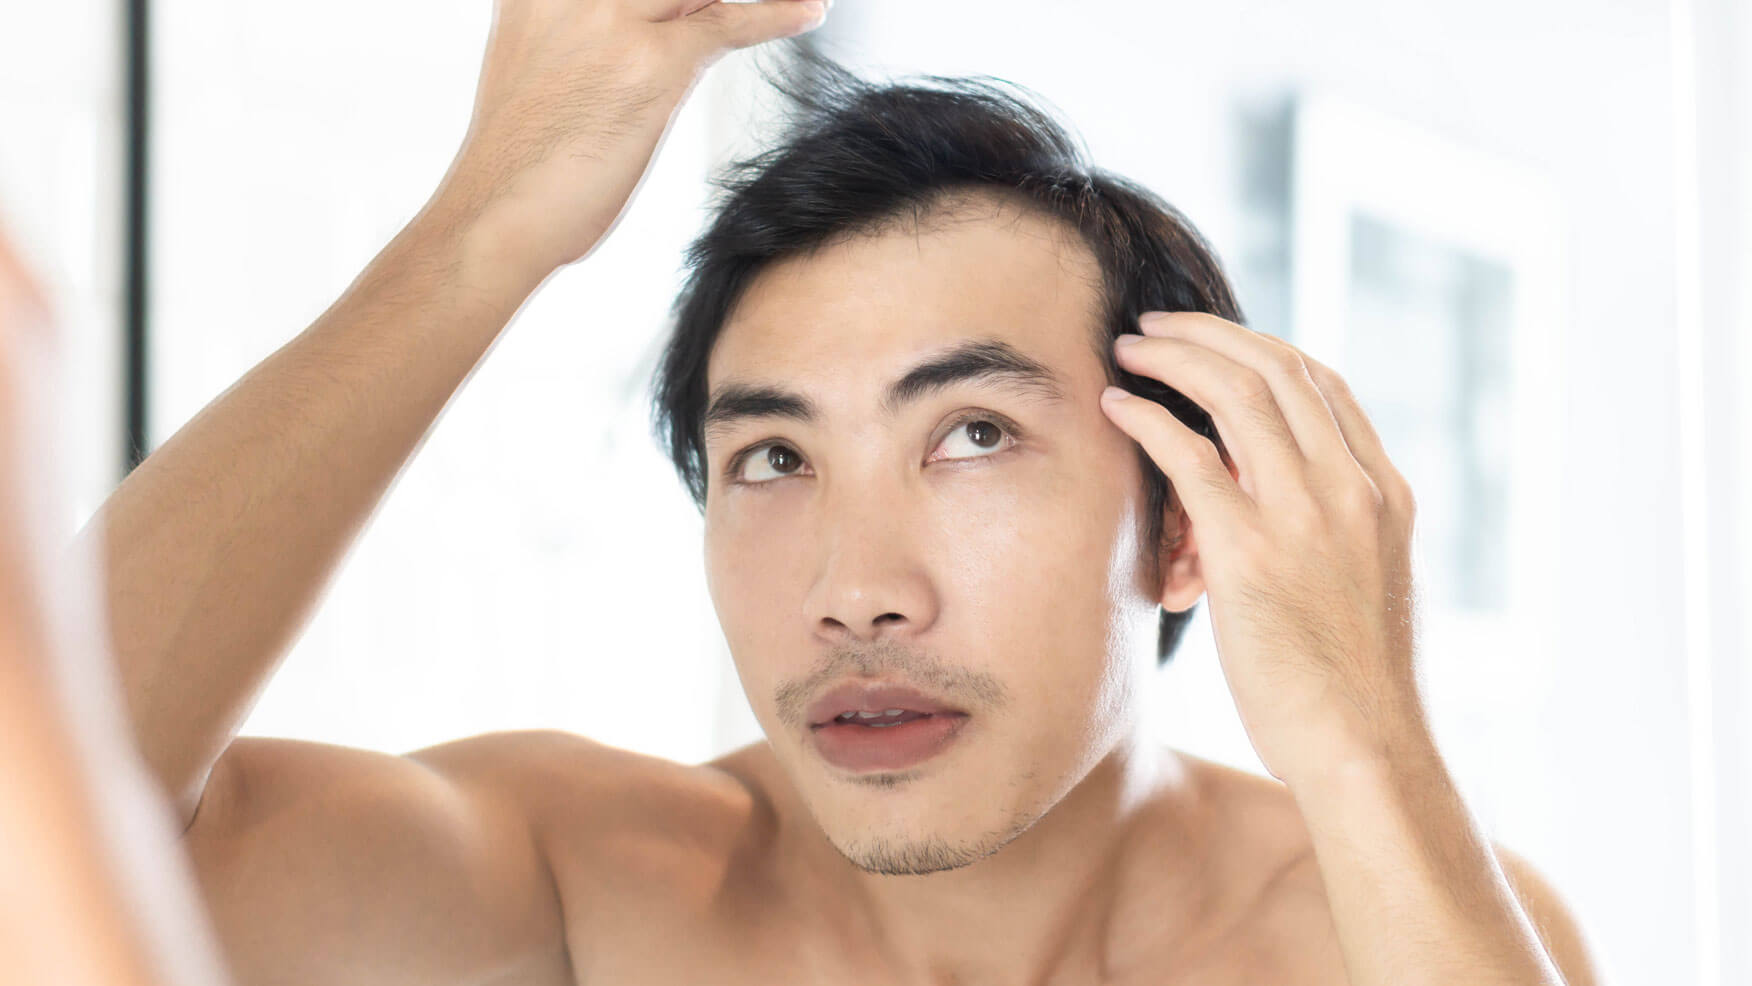 A topless man examining his hair in the mirror